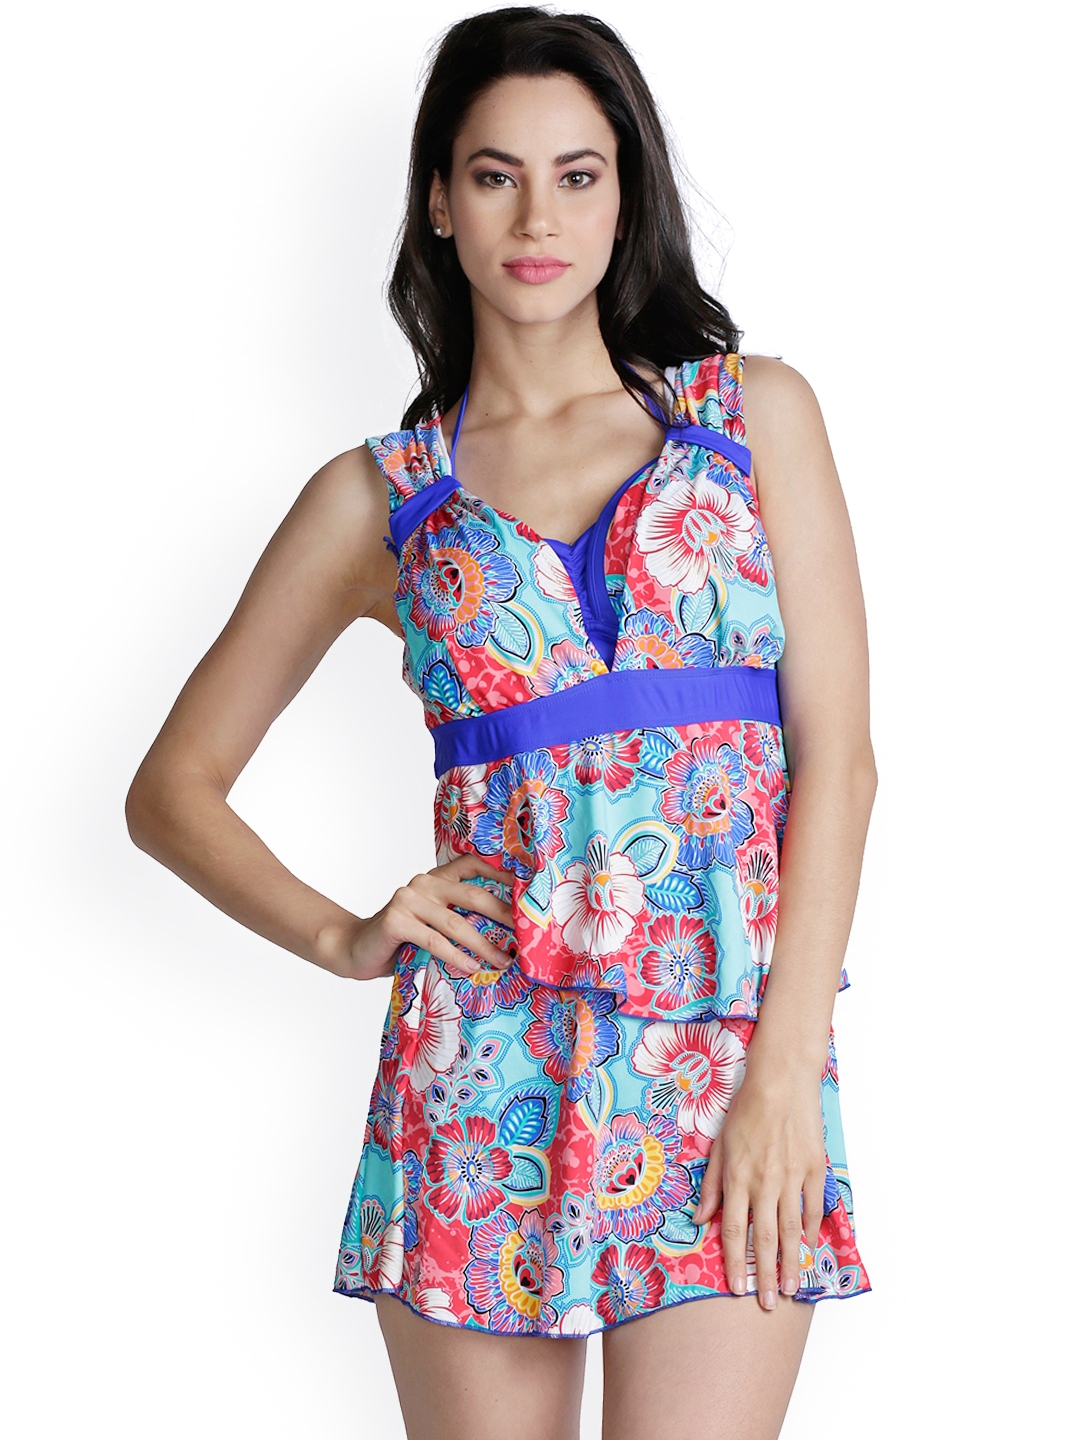 bc8f034c45293 Heart 2 Heart Turquoise Blue Floral Print Swimming Dress SW9014CALBL